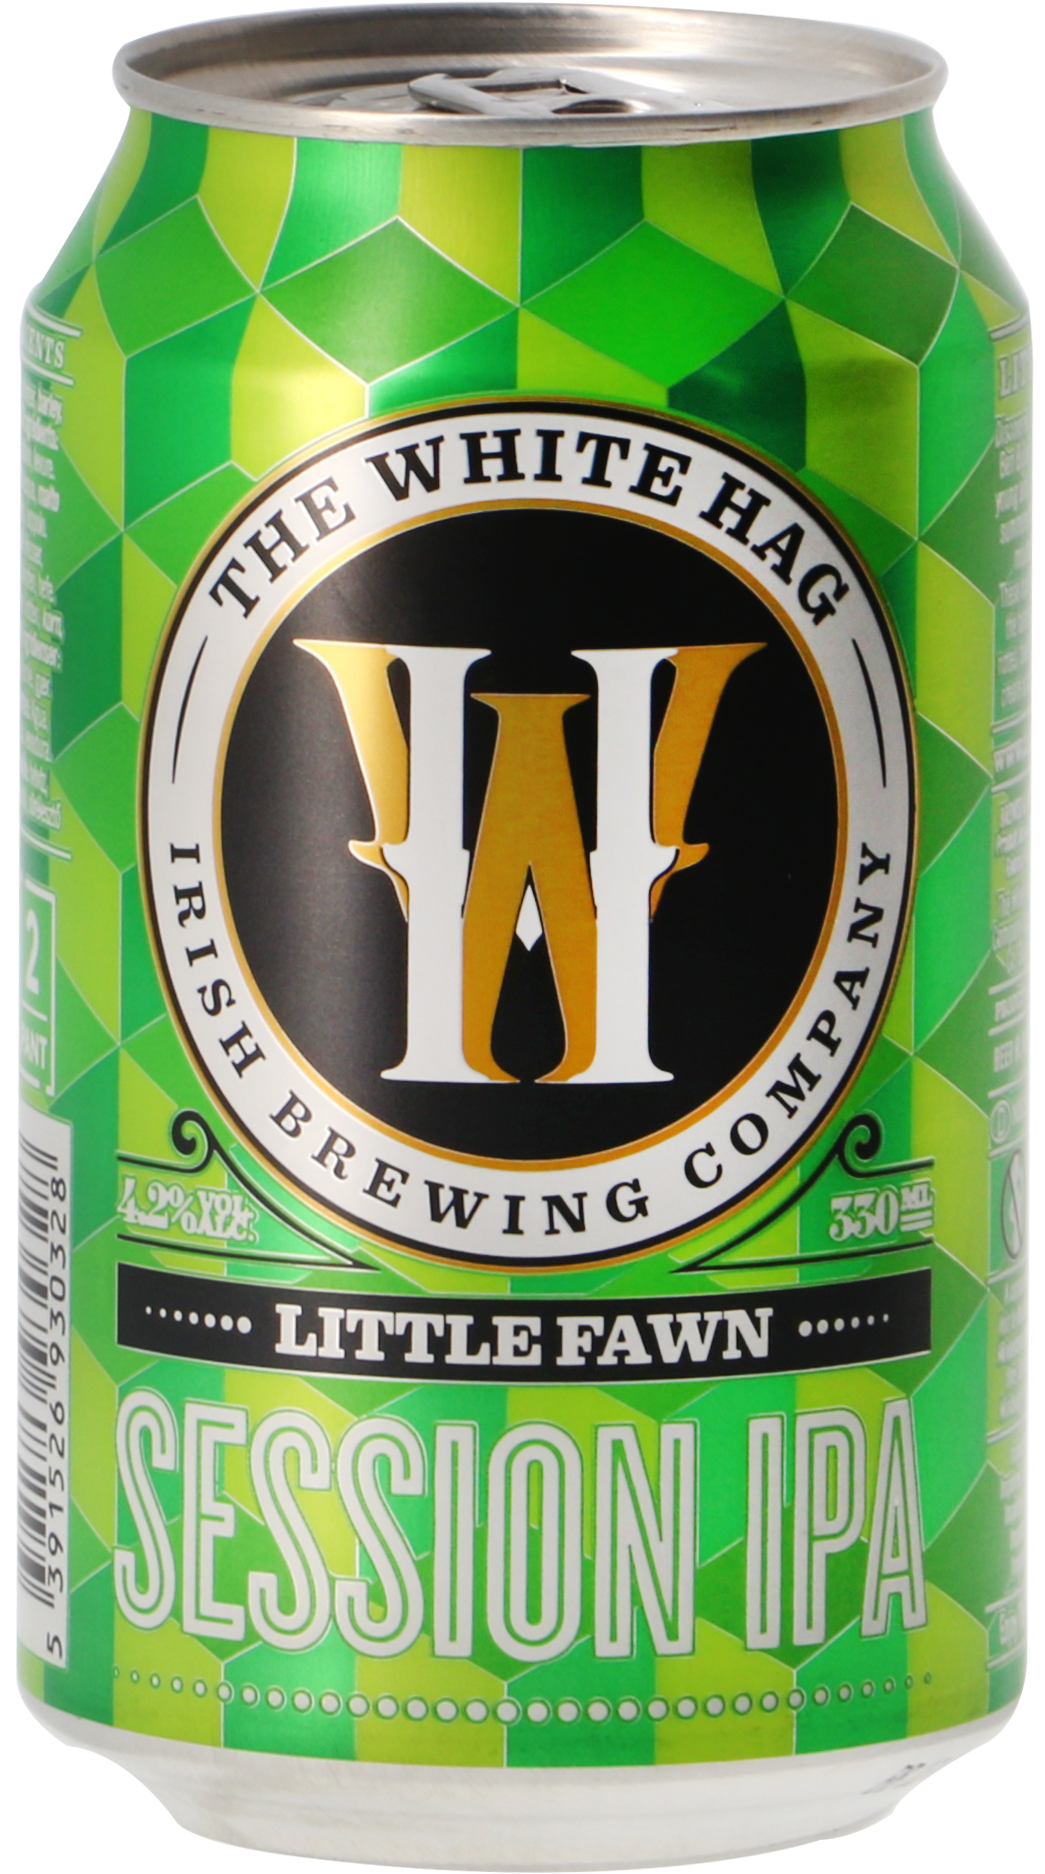 The White Hag Little Fawn - Lata